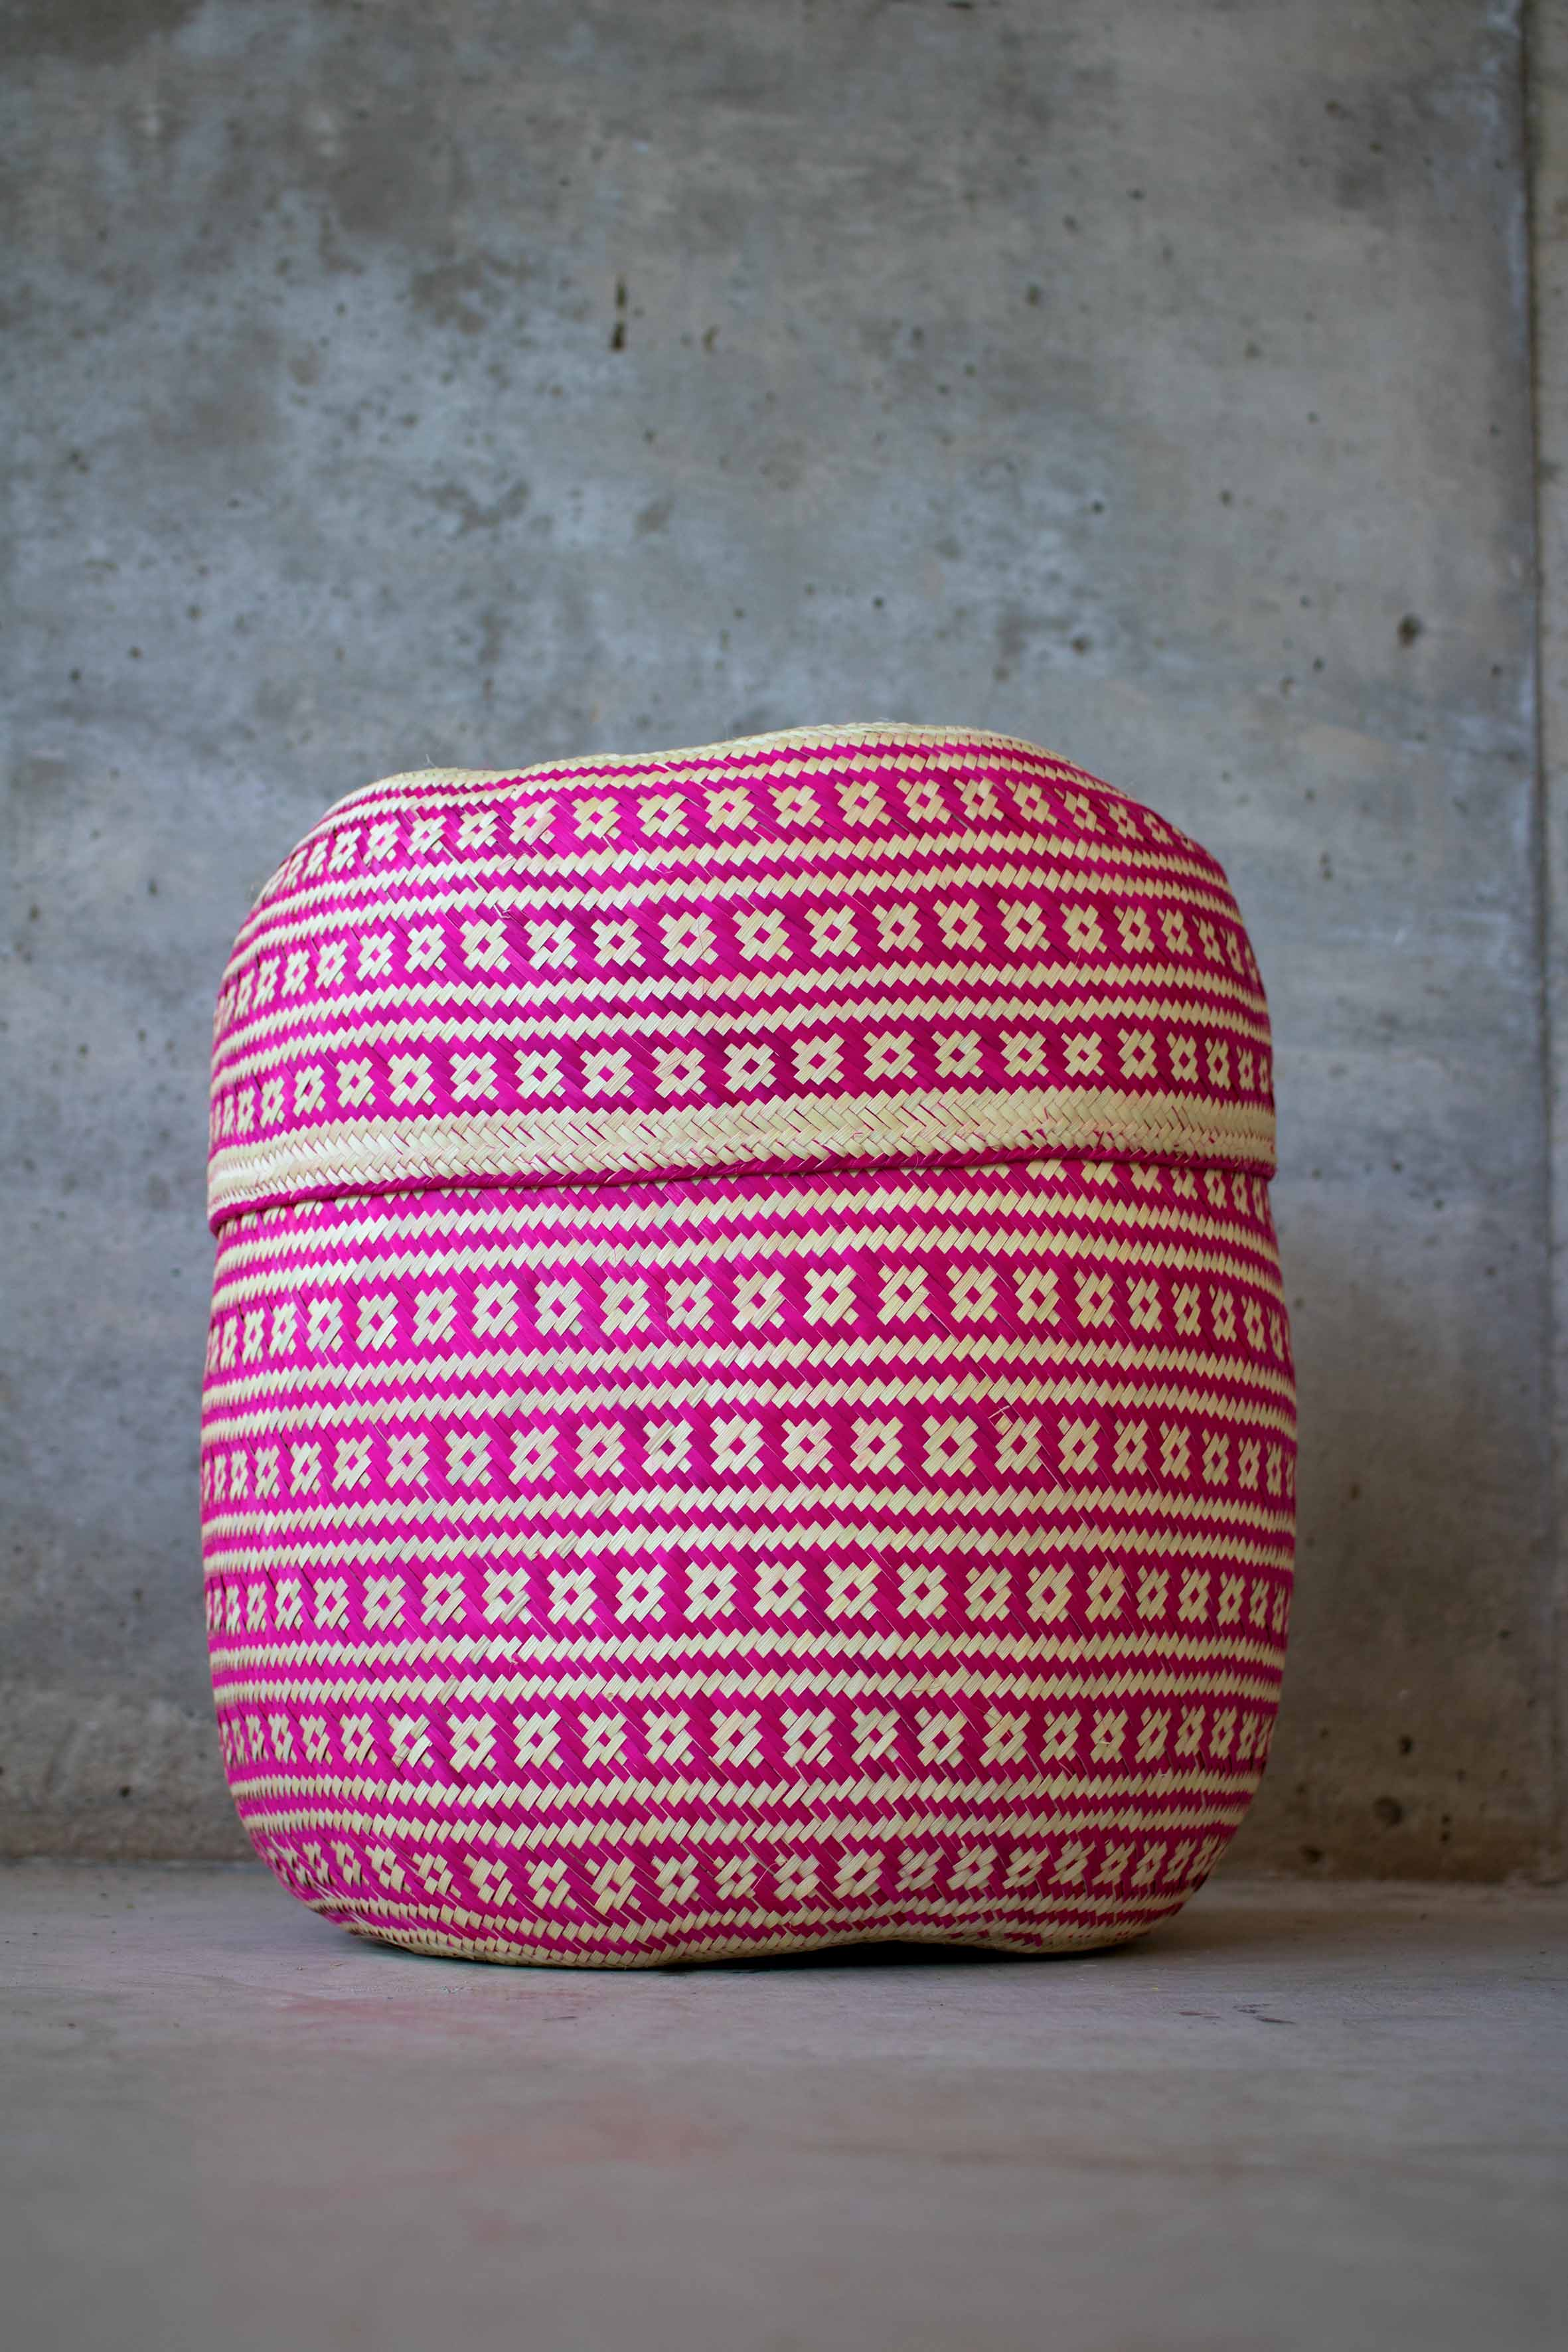 Handmade, ethical and sustainable palm basket from Mexico - Large Pink